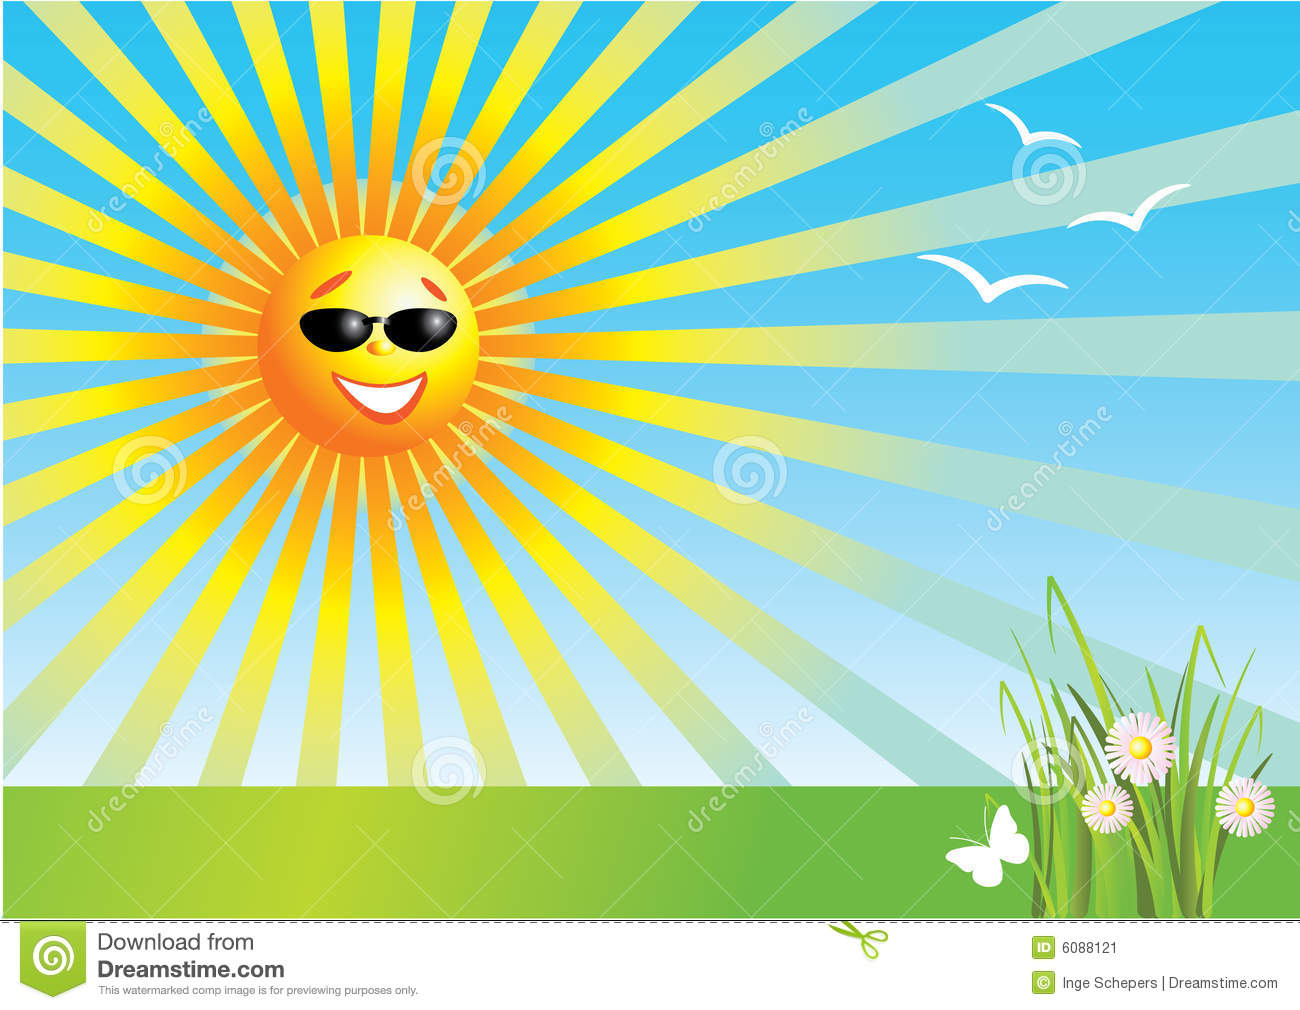 Sunny Day Clipart #1-Sunny Day Clipart #1-16